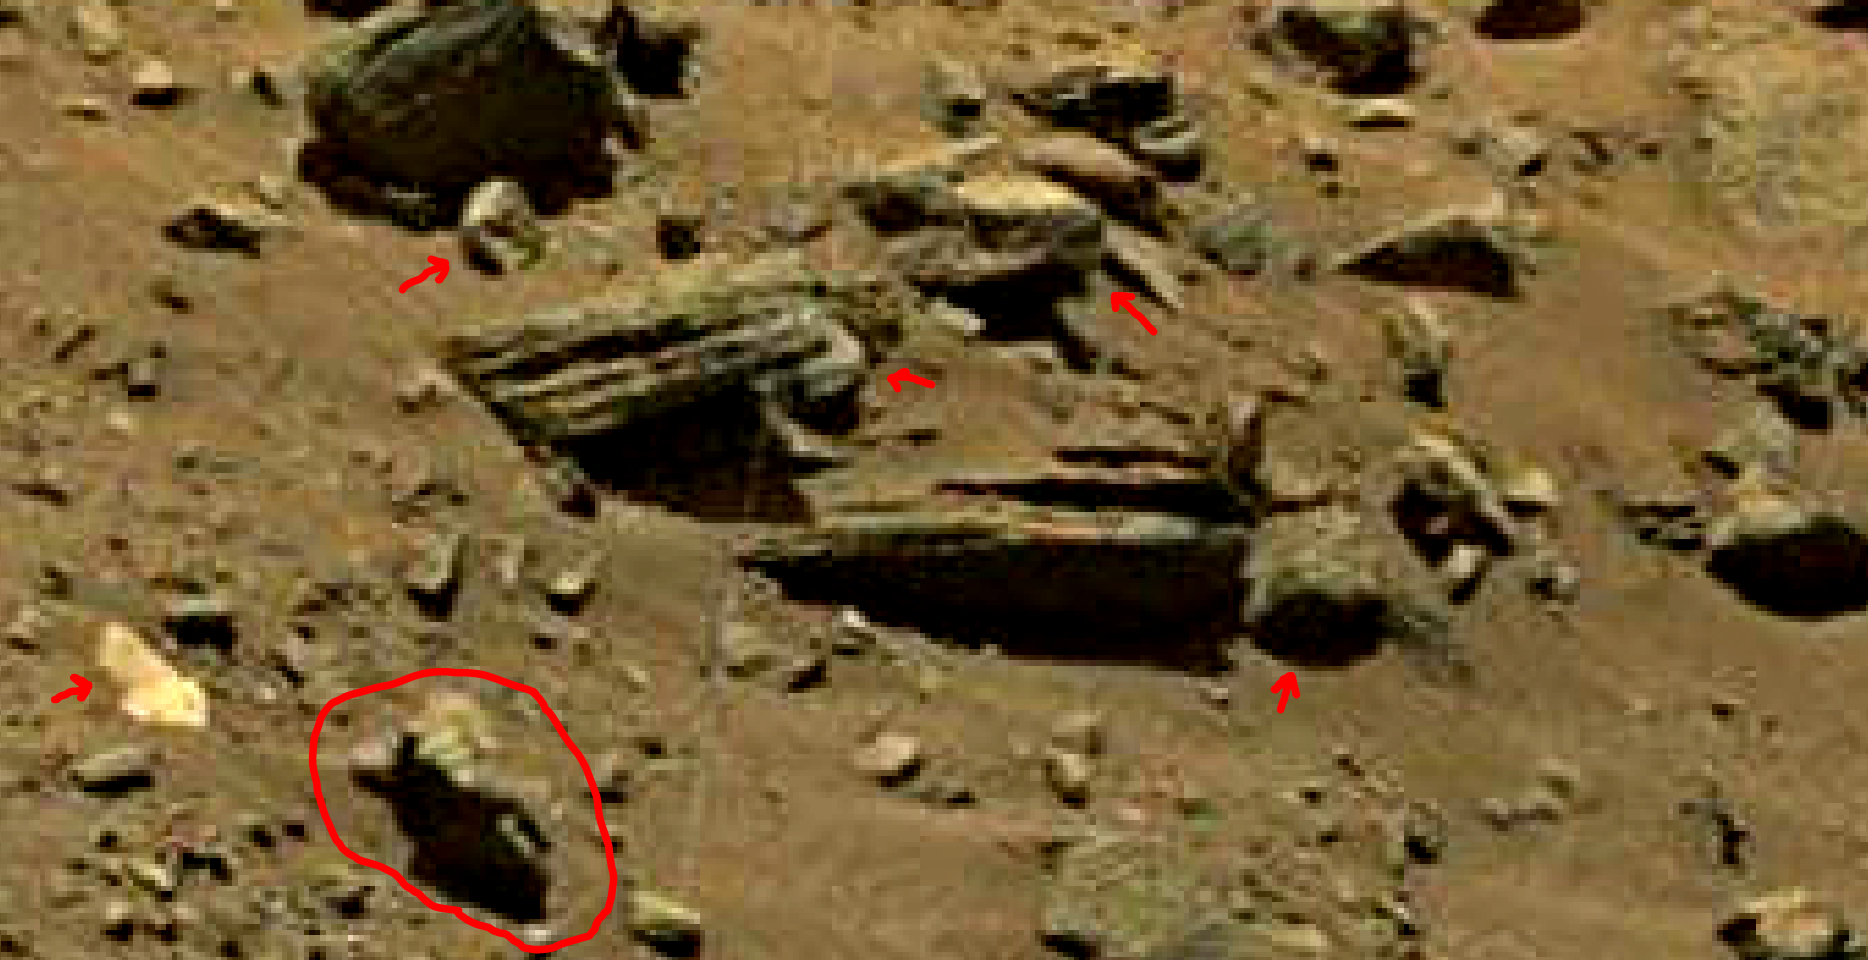 mars sol 1399 anomaly artifacts 10a was life on mars